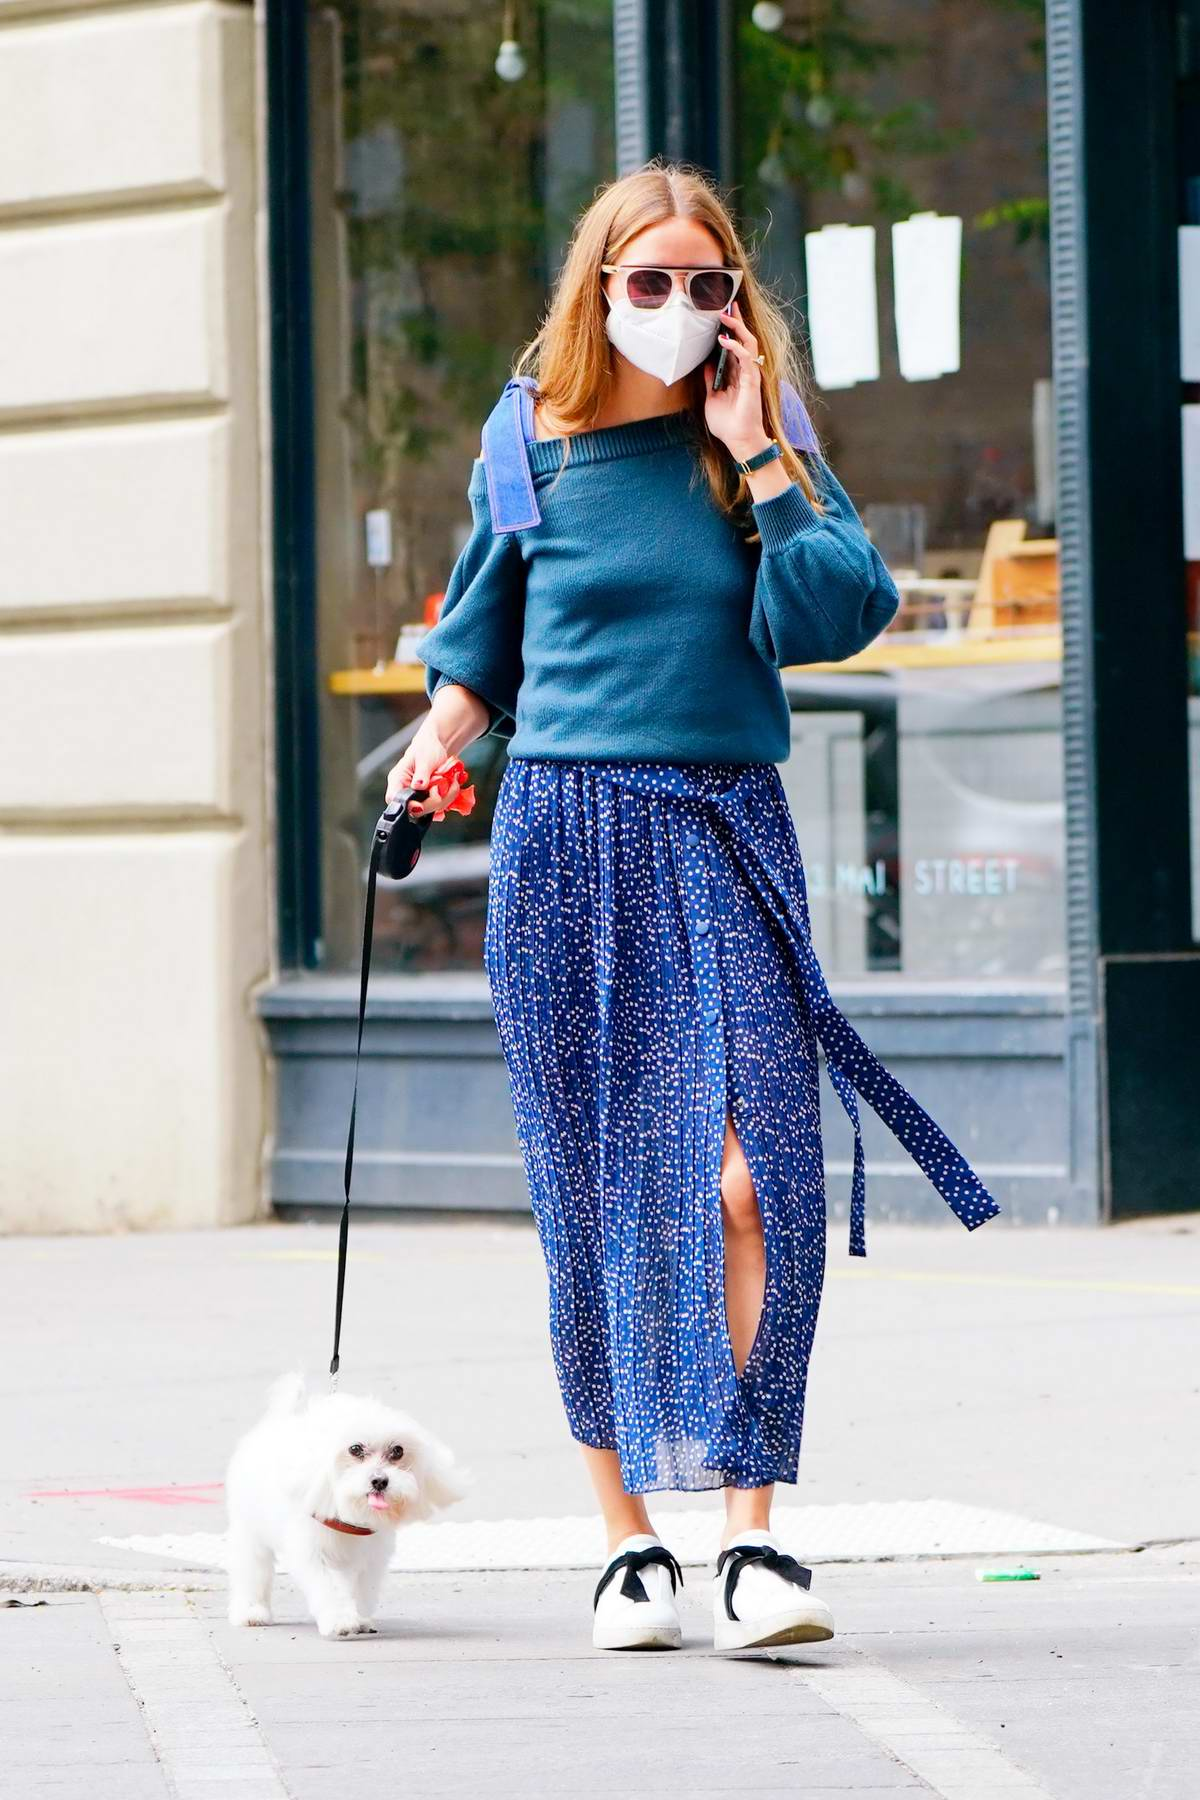 Olivia Palermo looks stylish in a blue semi-sheer skirt as she walks her dog Mr Butler in Brooklyn, New York City